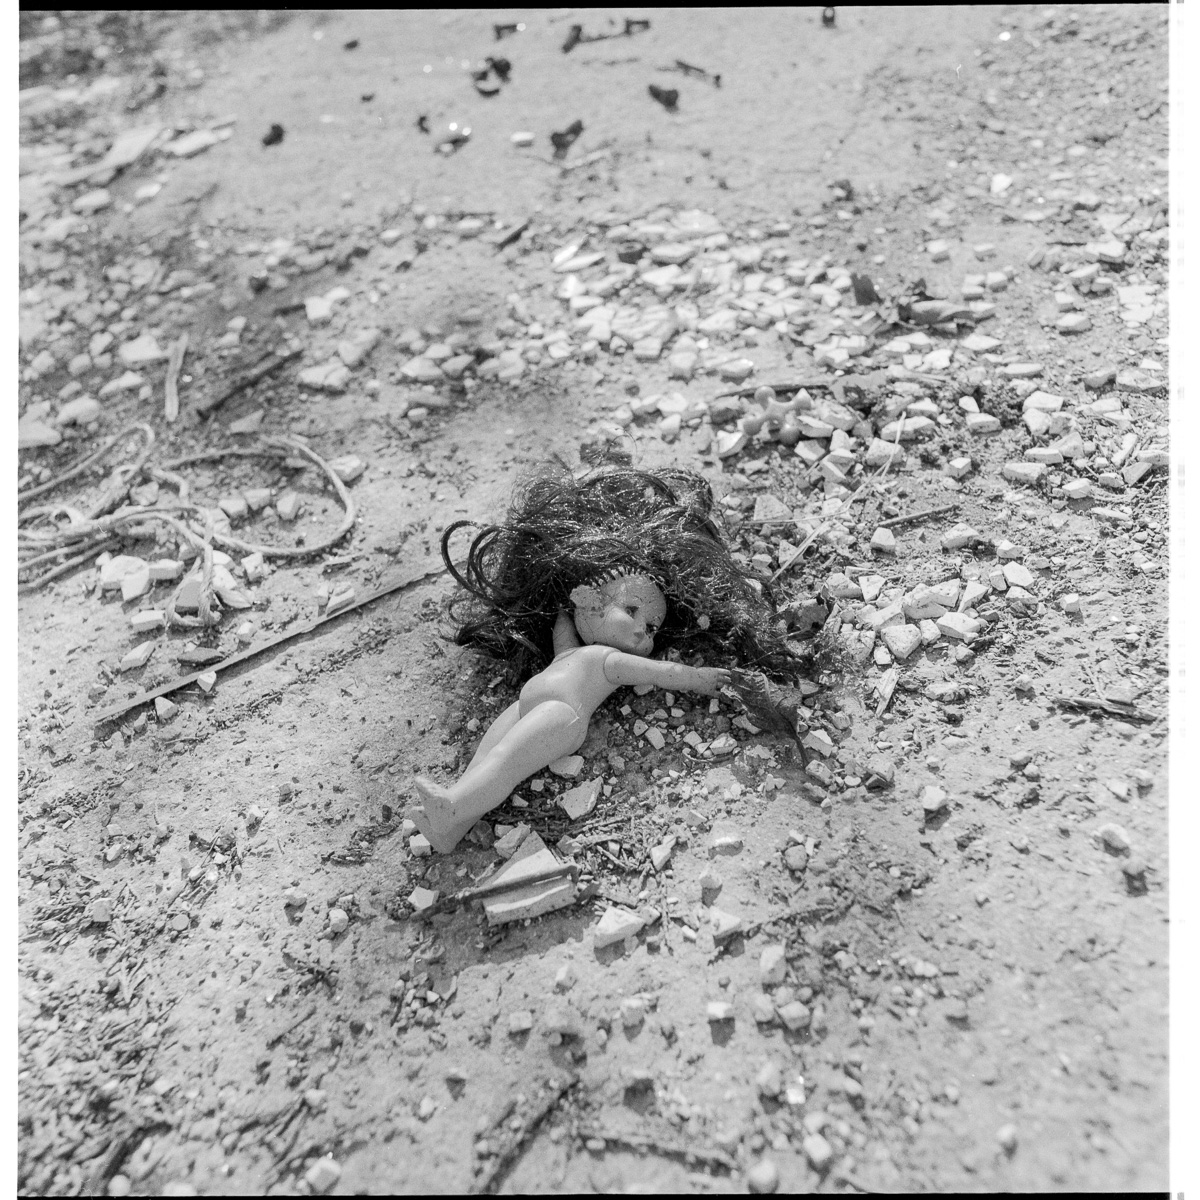 A small discarded plastic doll lies naked amongst scattered stones and other rubbish, her hair awry.